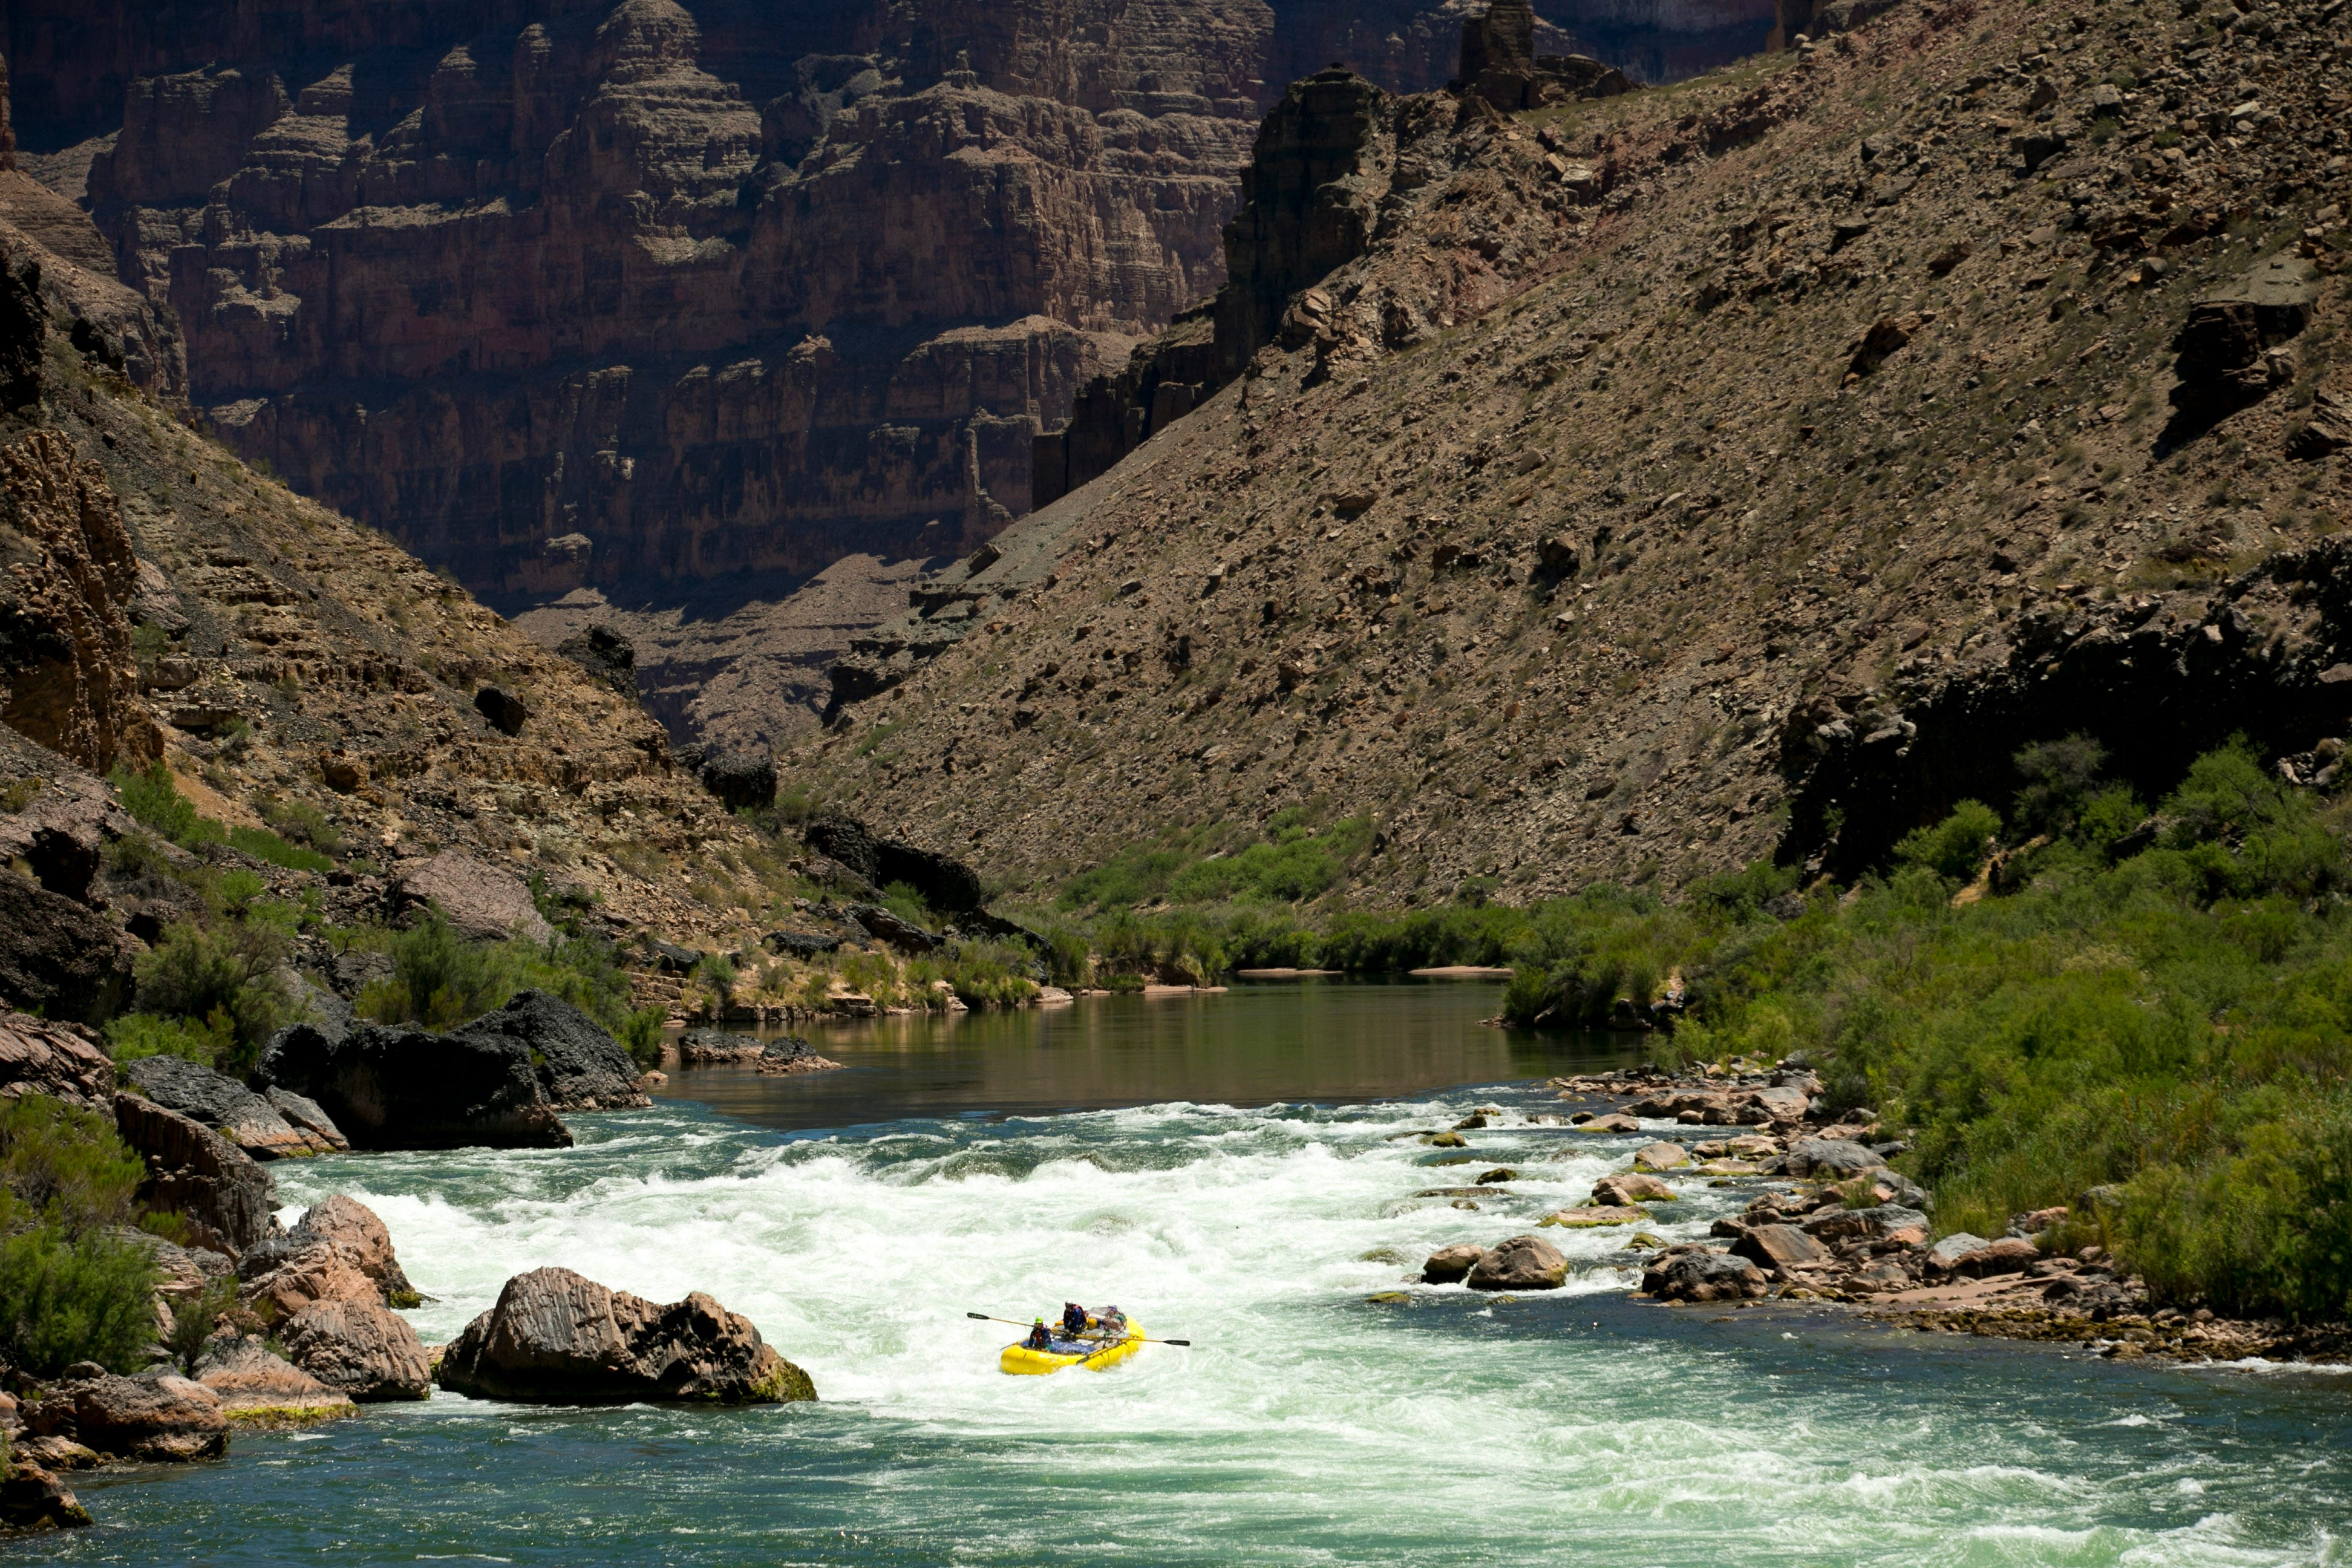 Boaters run the Class 10 Lava Rapid in the Colorado River in Grand Canyon National Park. The Grand Canyon remains a prize for whitewater enthusiasts who love wild places.